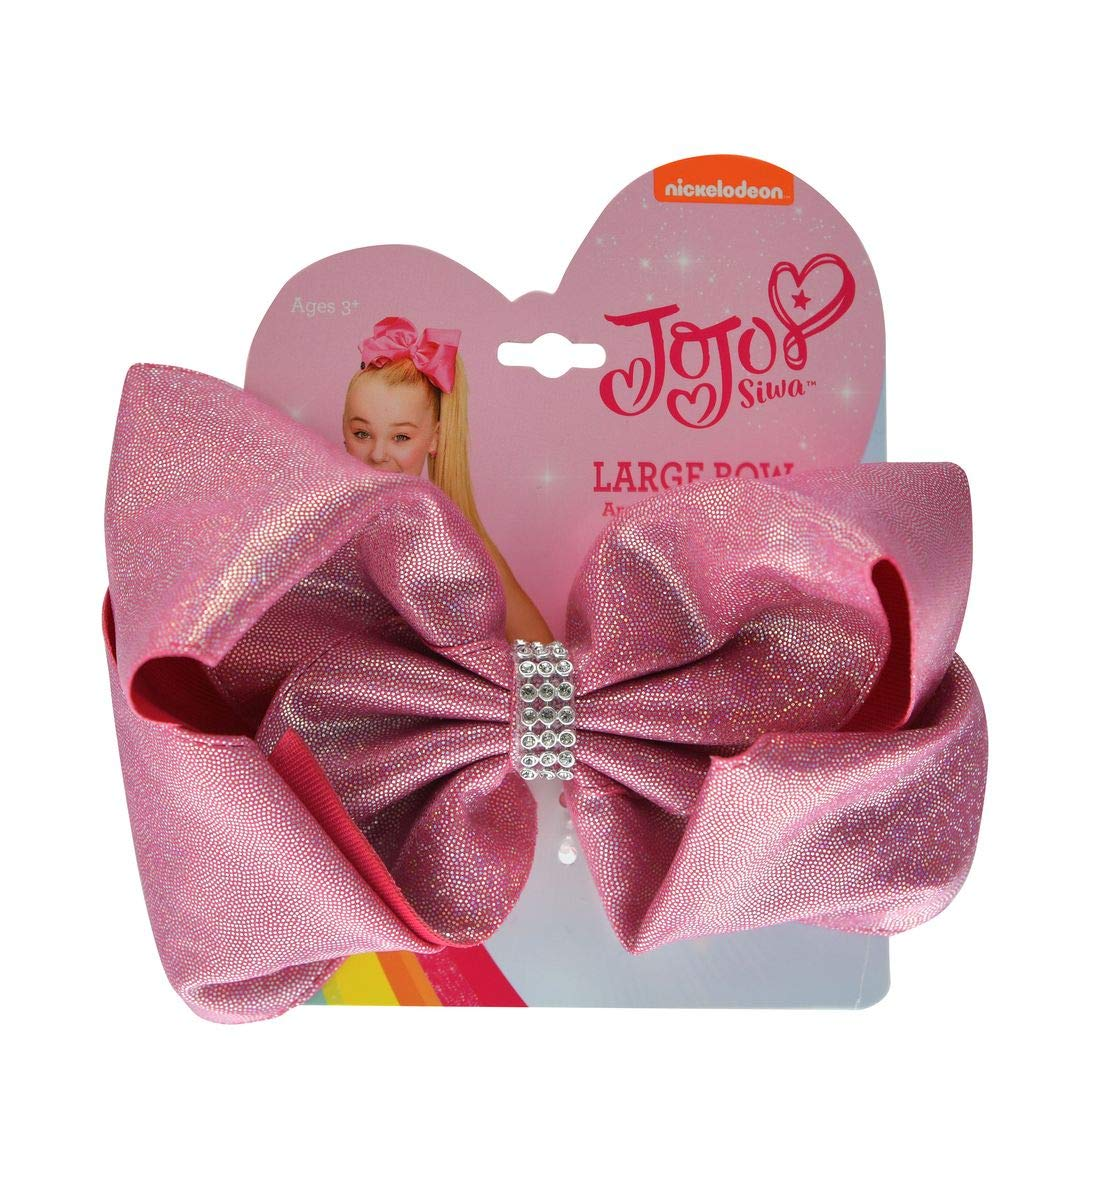 Mozlly Value Pack - JoJo Siwa Girls Rhinestone Pastel and Pink Glitter Signature Collection Hair Bow Clips - 5 x 5 inch - Elastic Pony - Novelty Fashion Collectibles (2 Items) by Mozlly (Image #3)